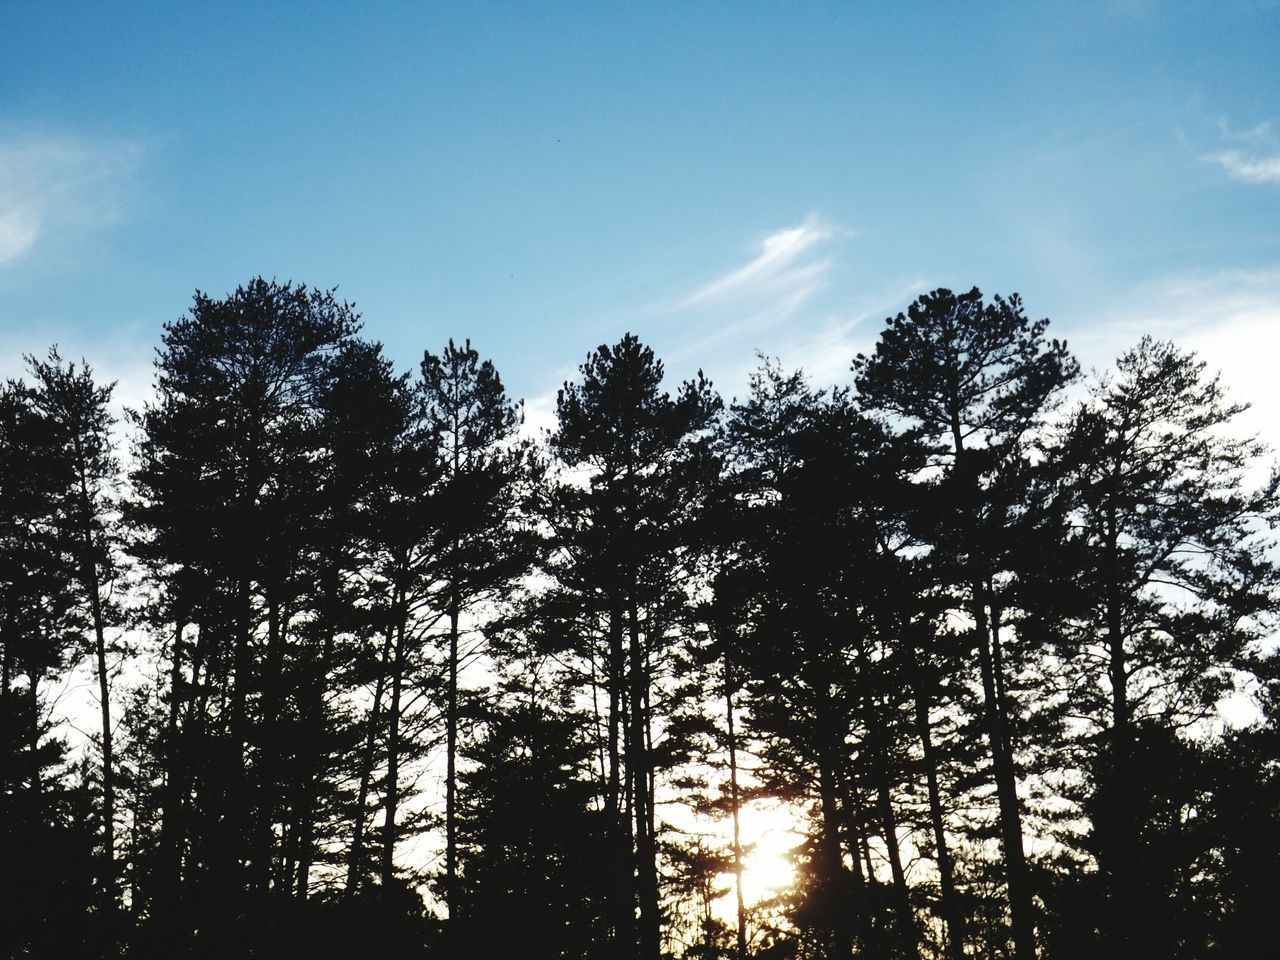 tree, forest, nature, low angle view, sky, beauty in nature, growth, tranquility, scenics, no people, day, silhouette, outdoors, tranquil scene, landscape, tree area